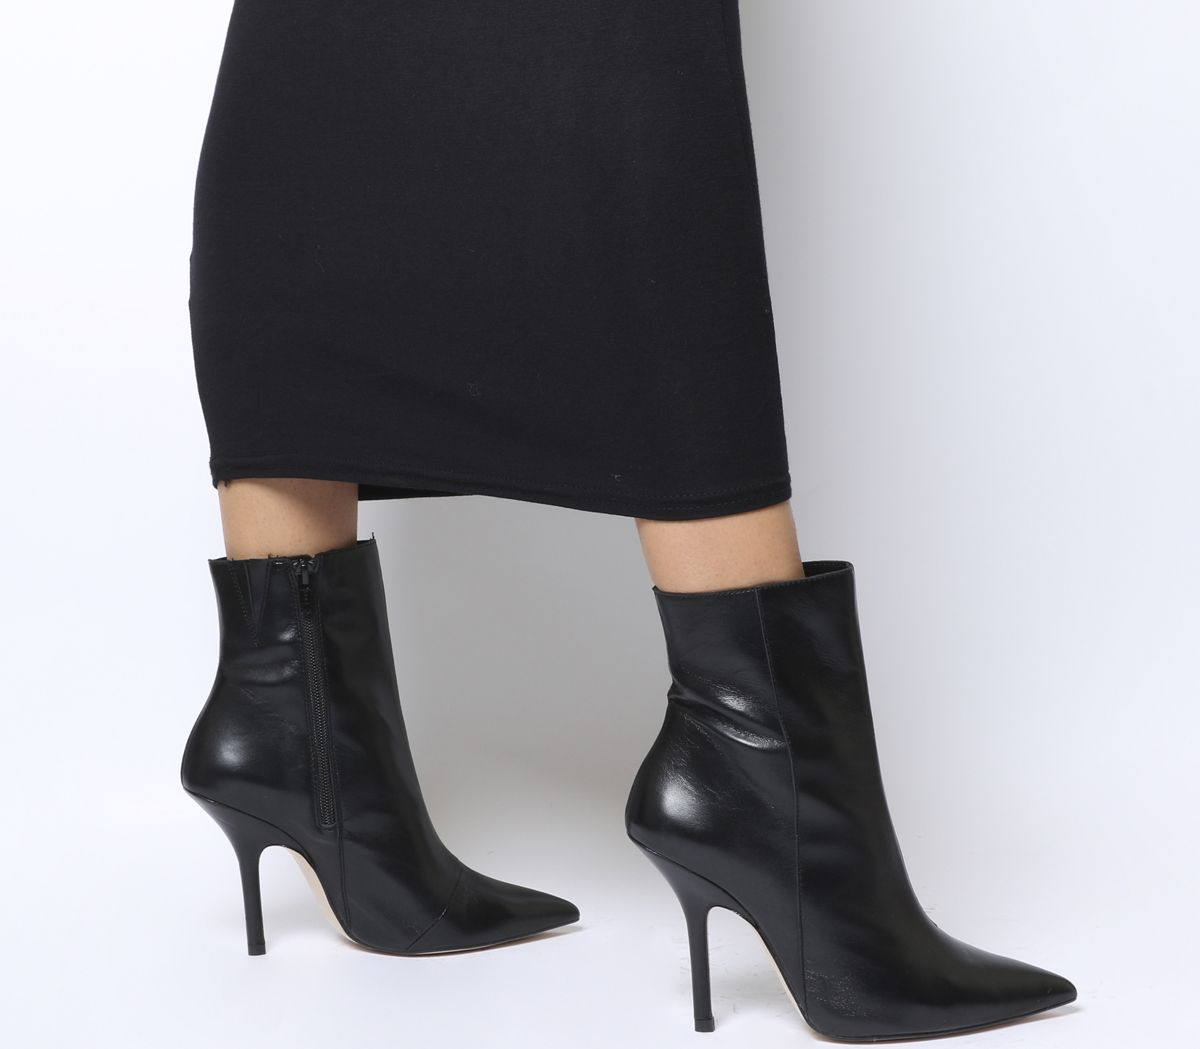 af1379c59fa Office Ambitious Extreme Point Stiletto Boots Black Leather - Ankle ...